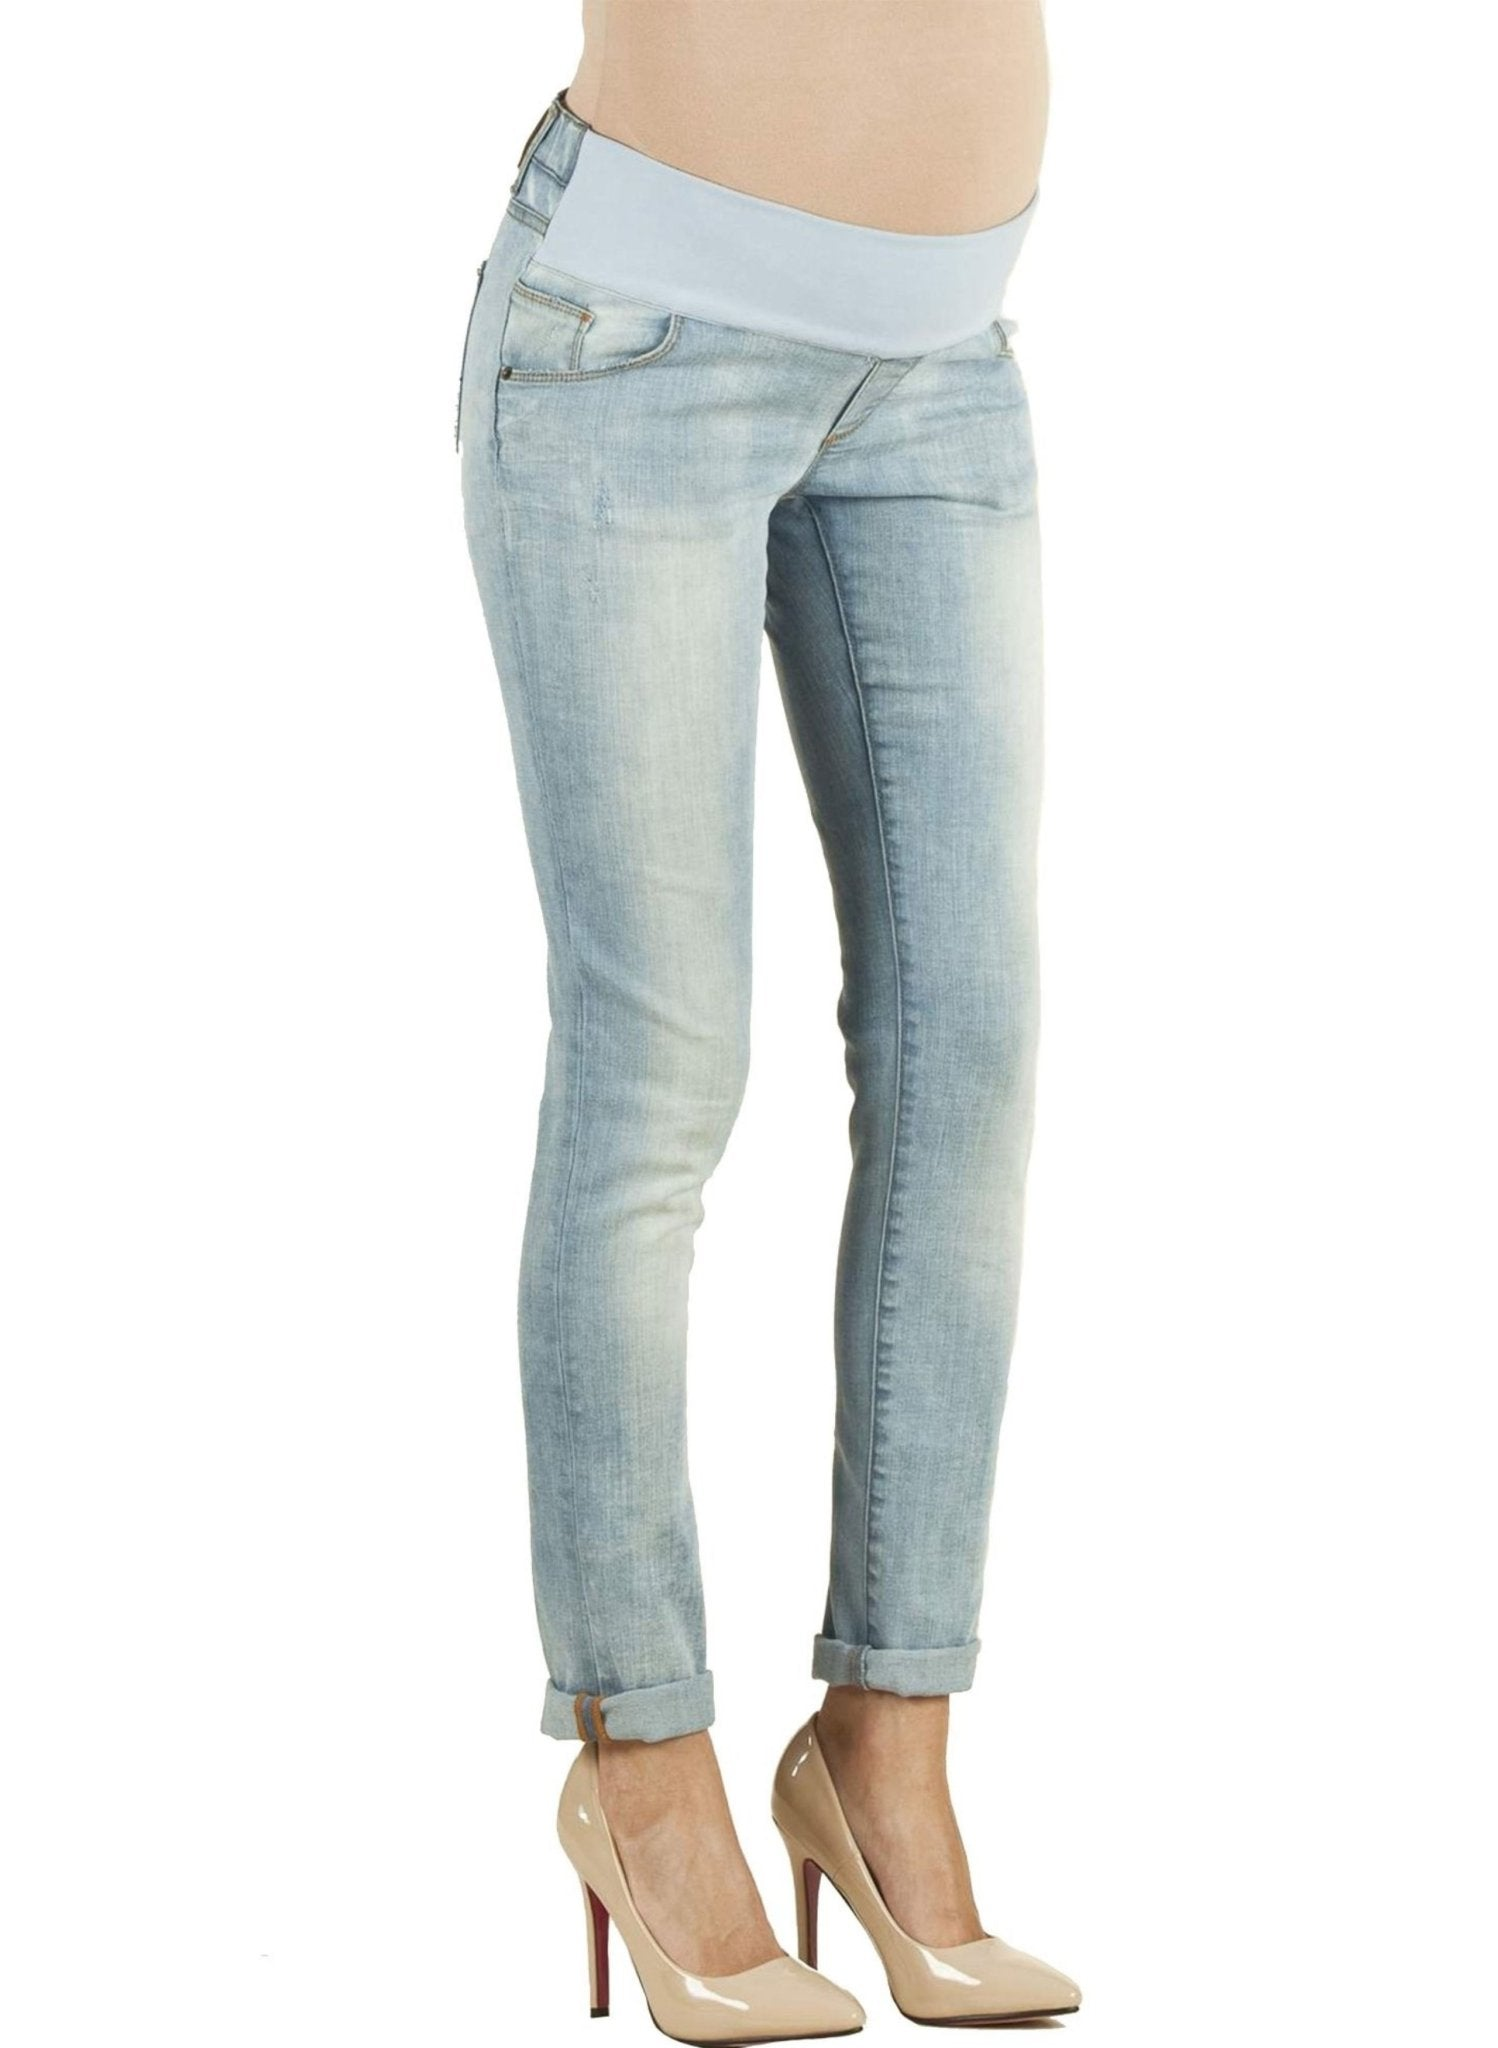 Under-Tummy Skinny Fit Maternity Jeans - Mums and Bumps